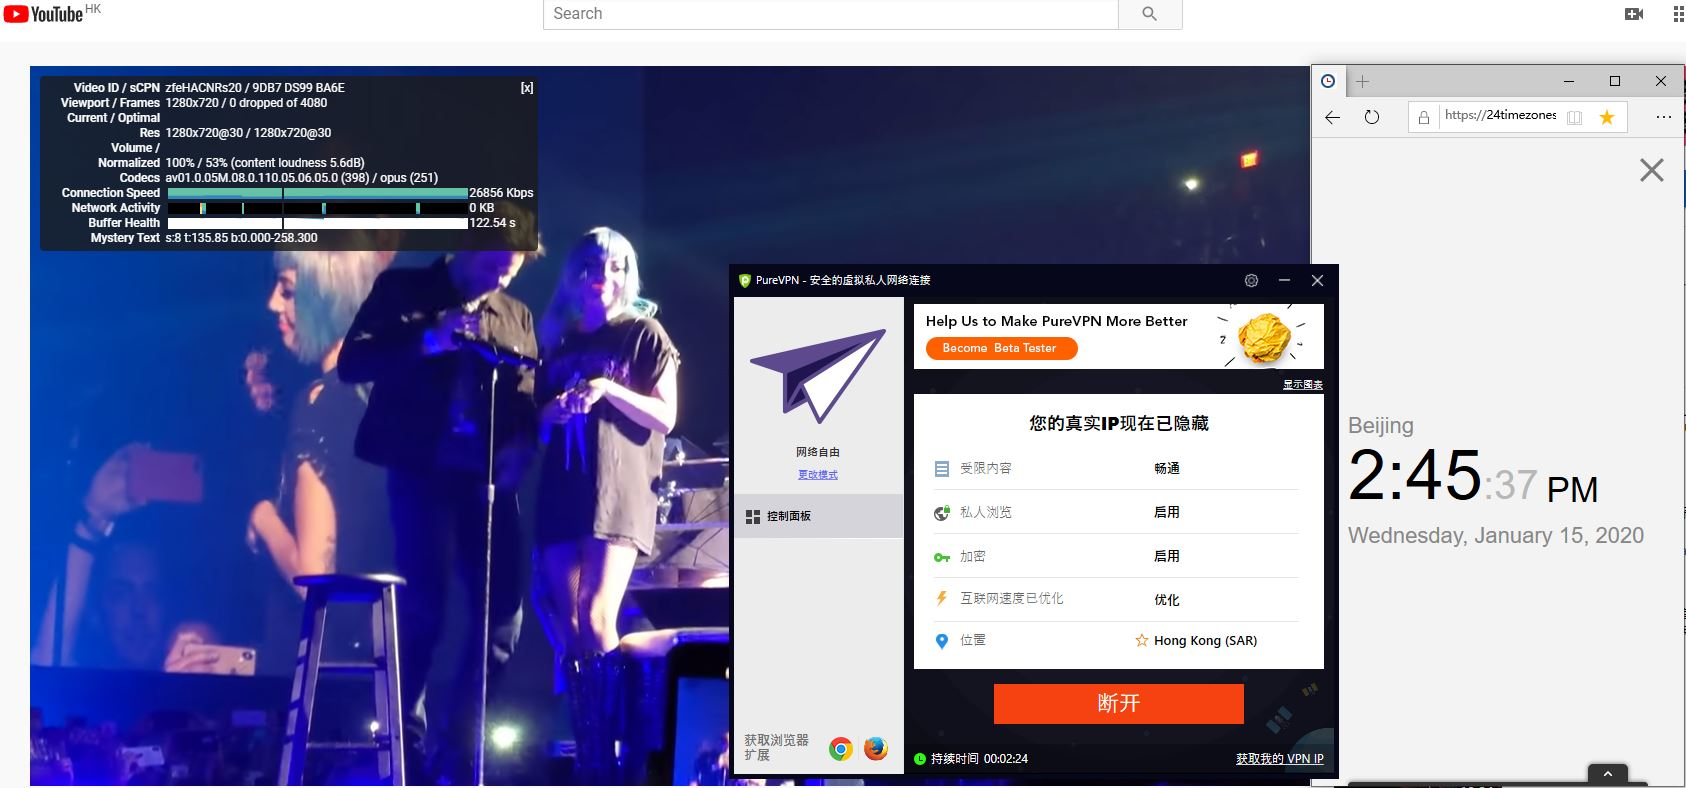 Windows10 PureVPN Hong Kong 中国VPN翻墙 科学上网 YouTube连接速度 VPN测速 - 20200115